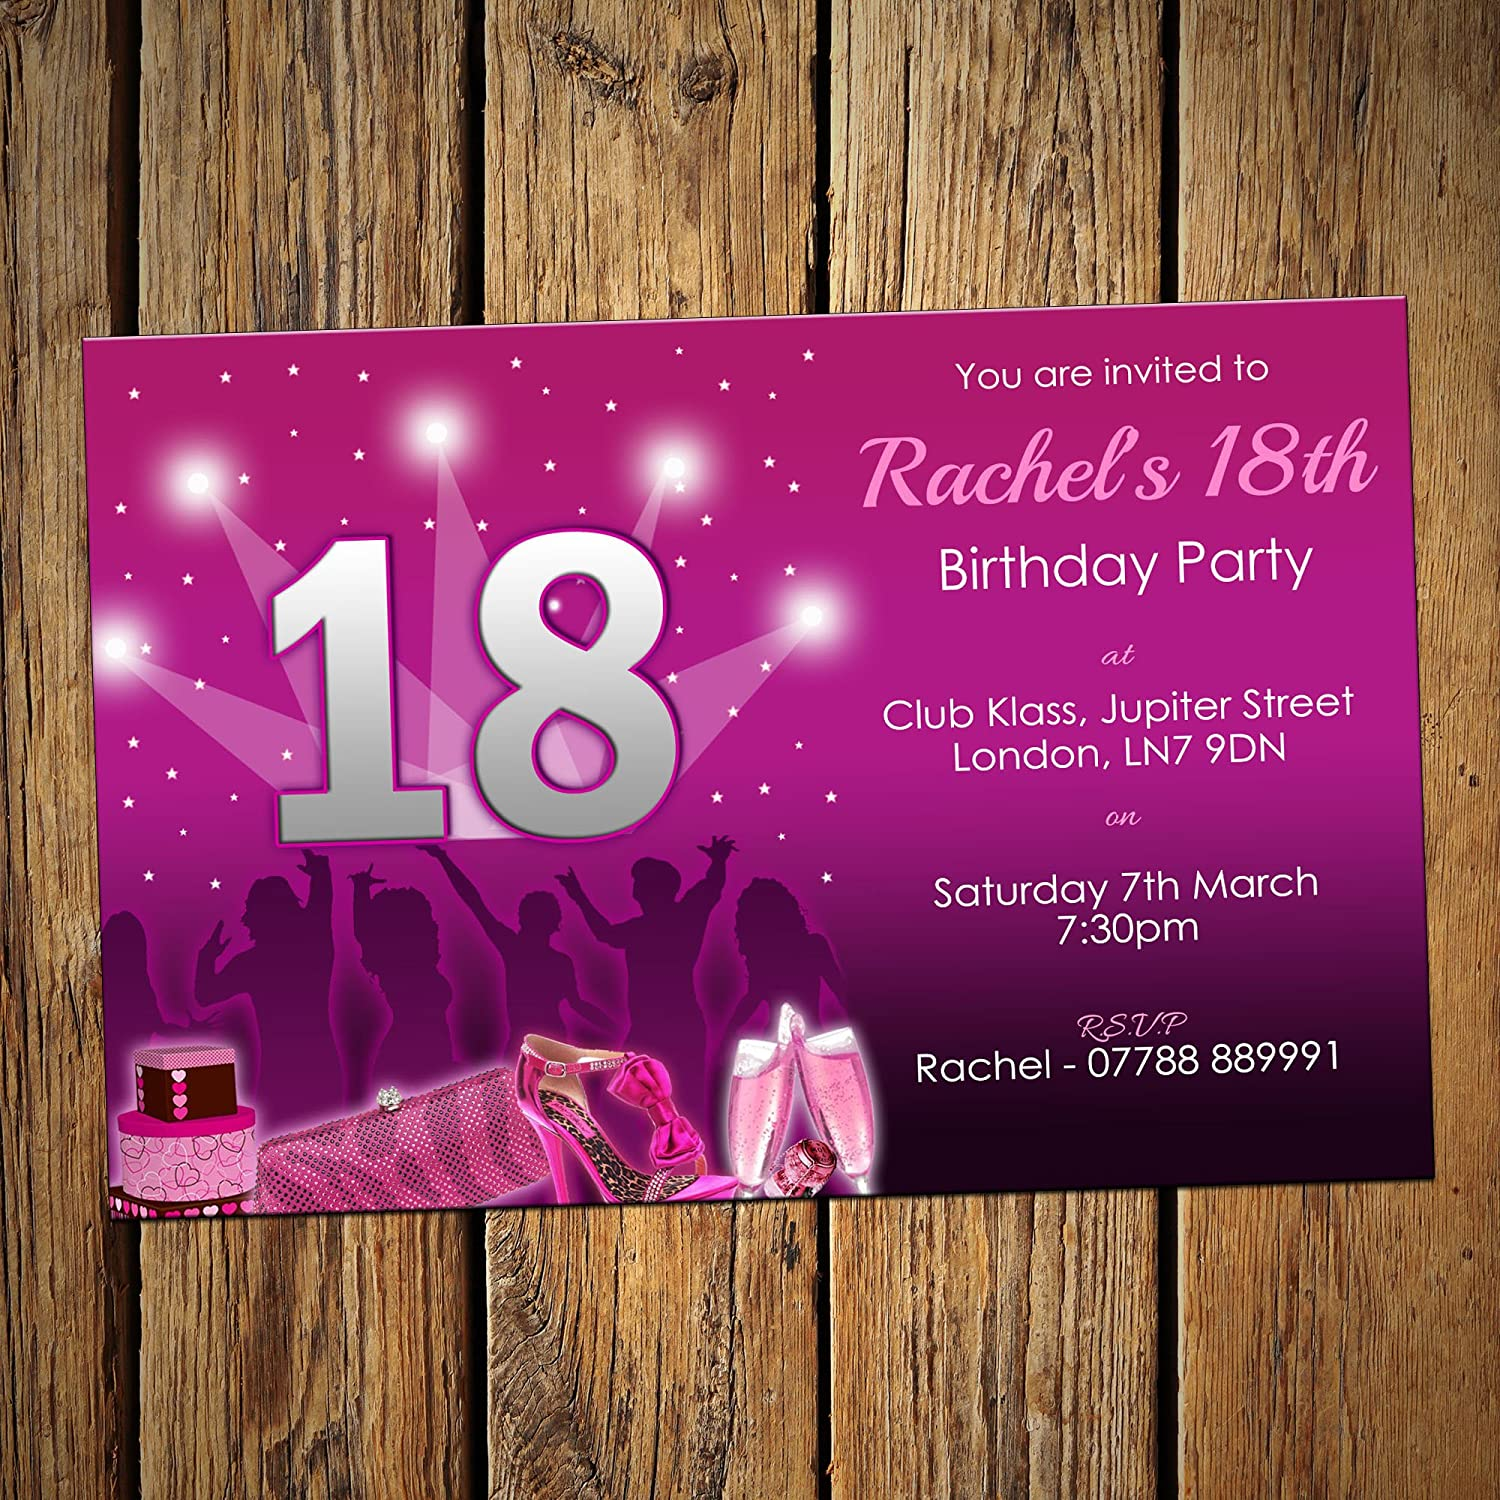 18th birthday party invites night out girls pack of 24 18th birthday party invites night out girls pack of 24 personalised see item description amazon kitchen home filmwisefo Gallery